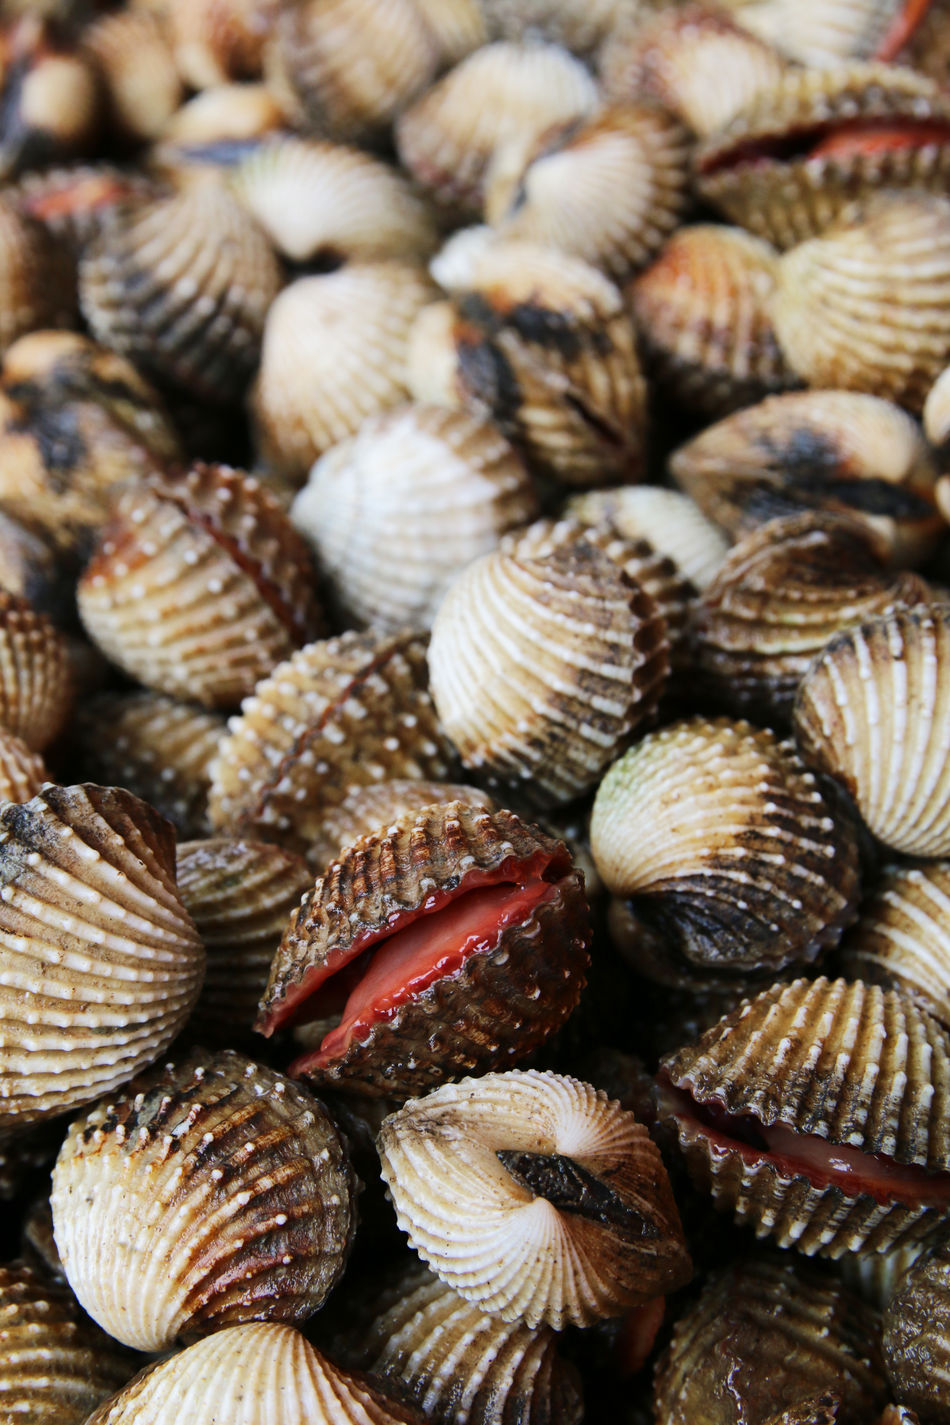 Blood cockles Allergic Allergy Bivalve Blood Clams Cockles Commercial Farming Food Freshness Hepatitis Molusk Red Tide Seafood Seashell SHELLFISH